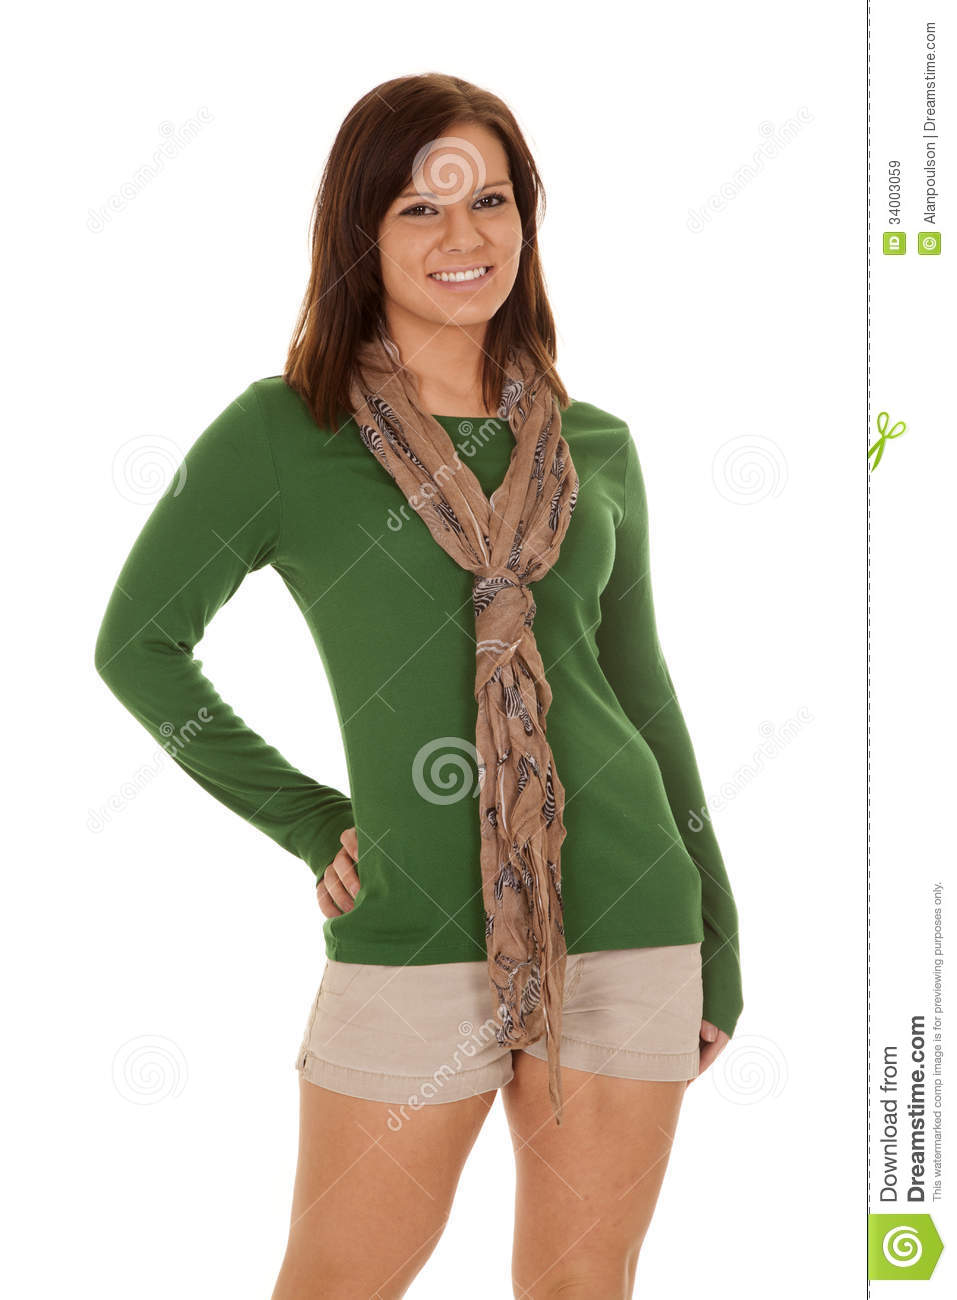 Woman Scarf Green Shirt Smile Hand Hip Royalty Free Stock Images ...